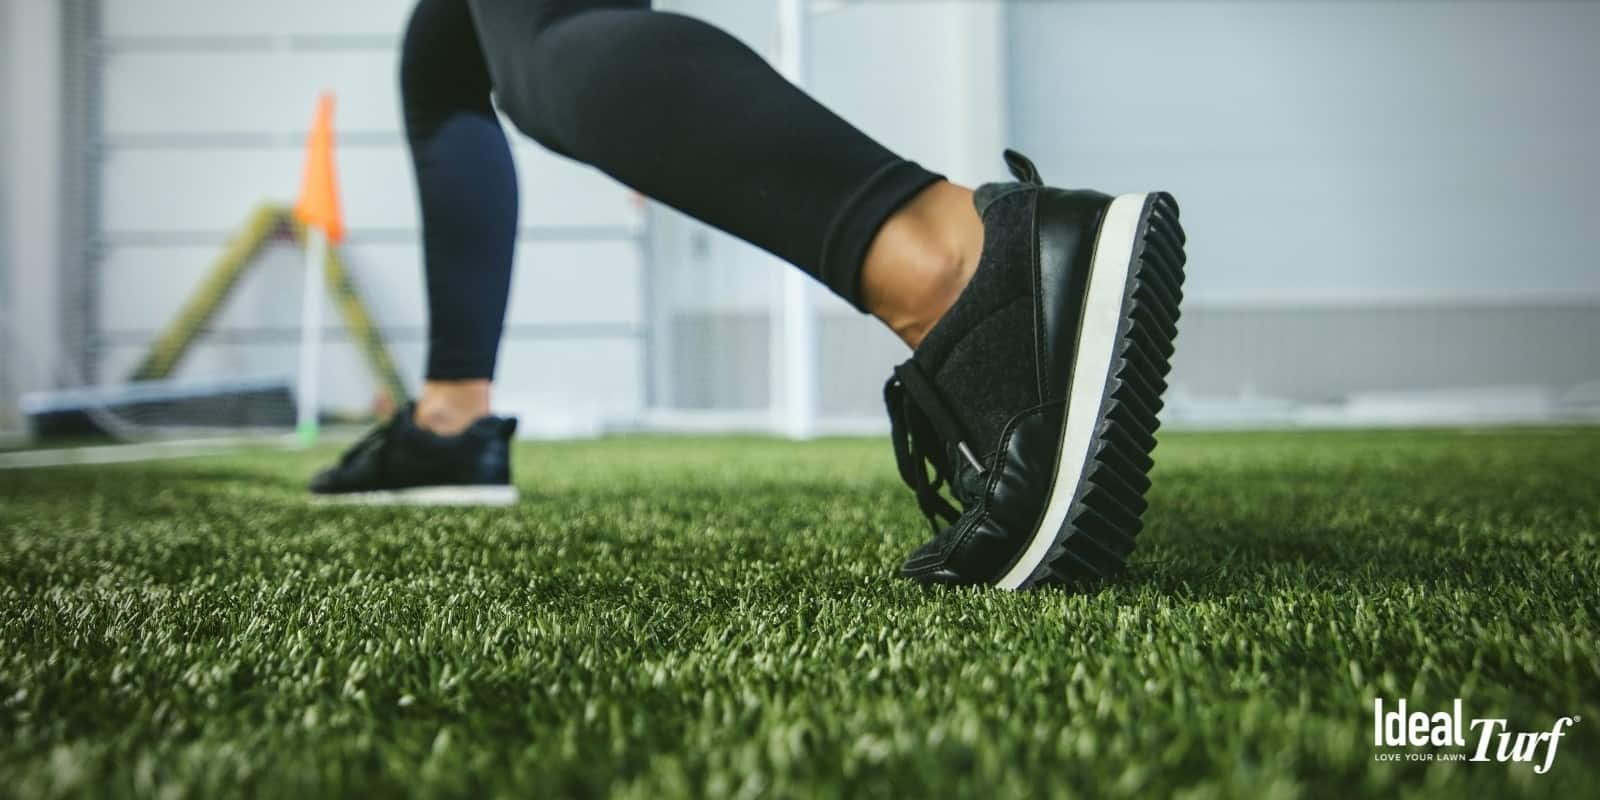 Woman's feet on artificial grass in gym